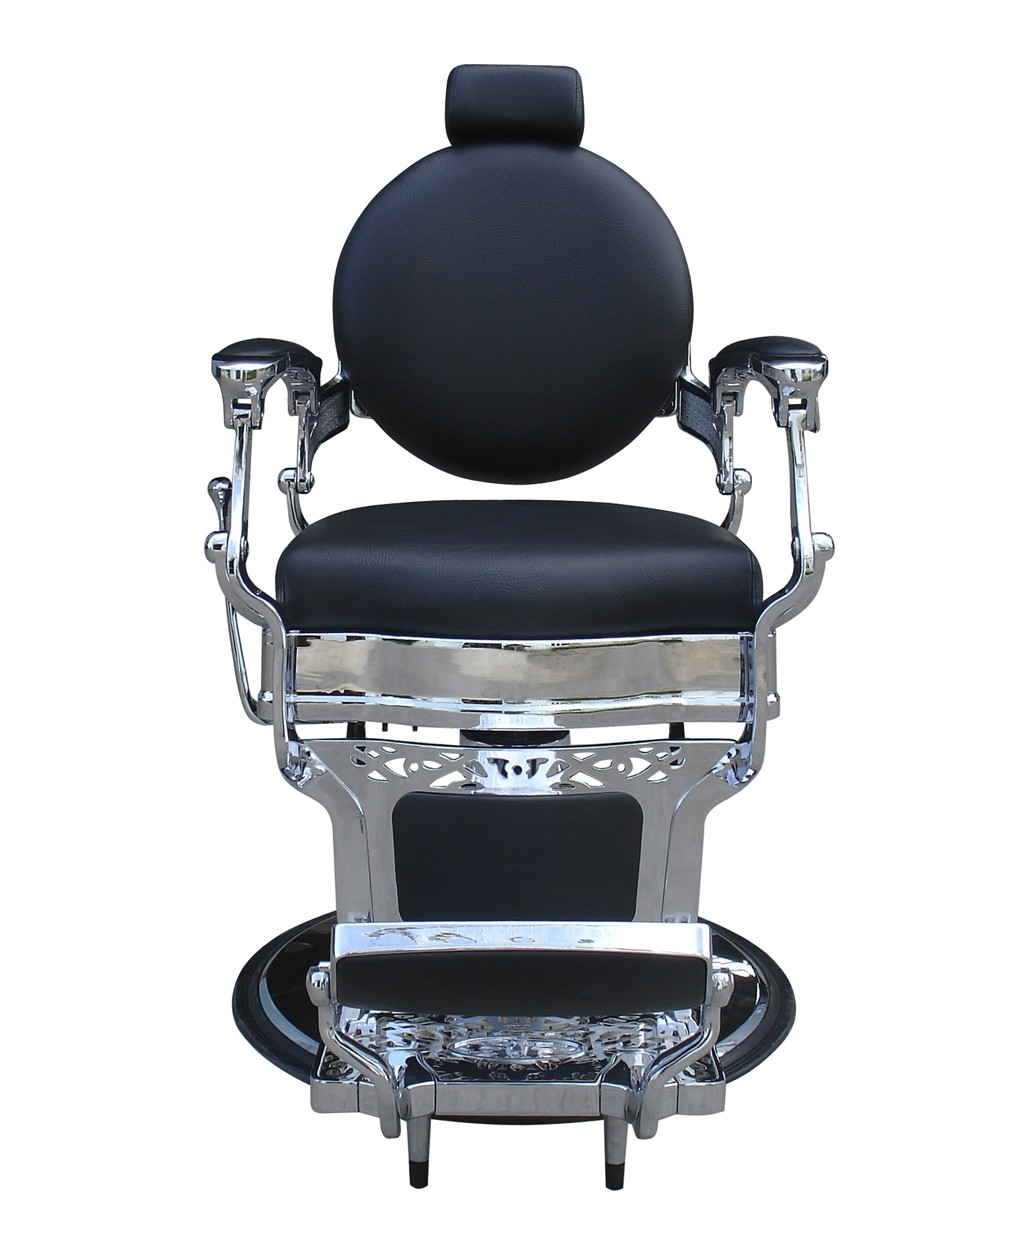 professional barber chair reviews cheap dining chairs for sale capone